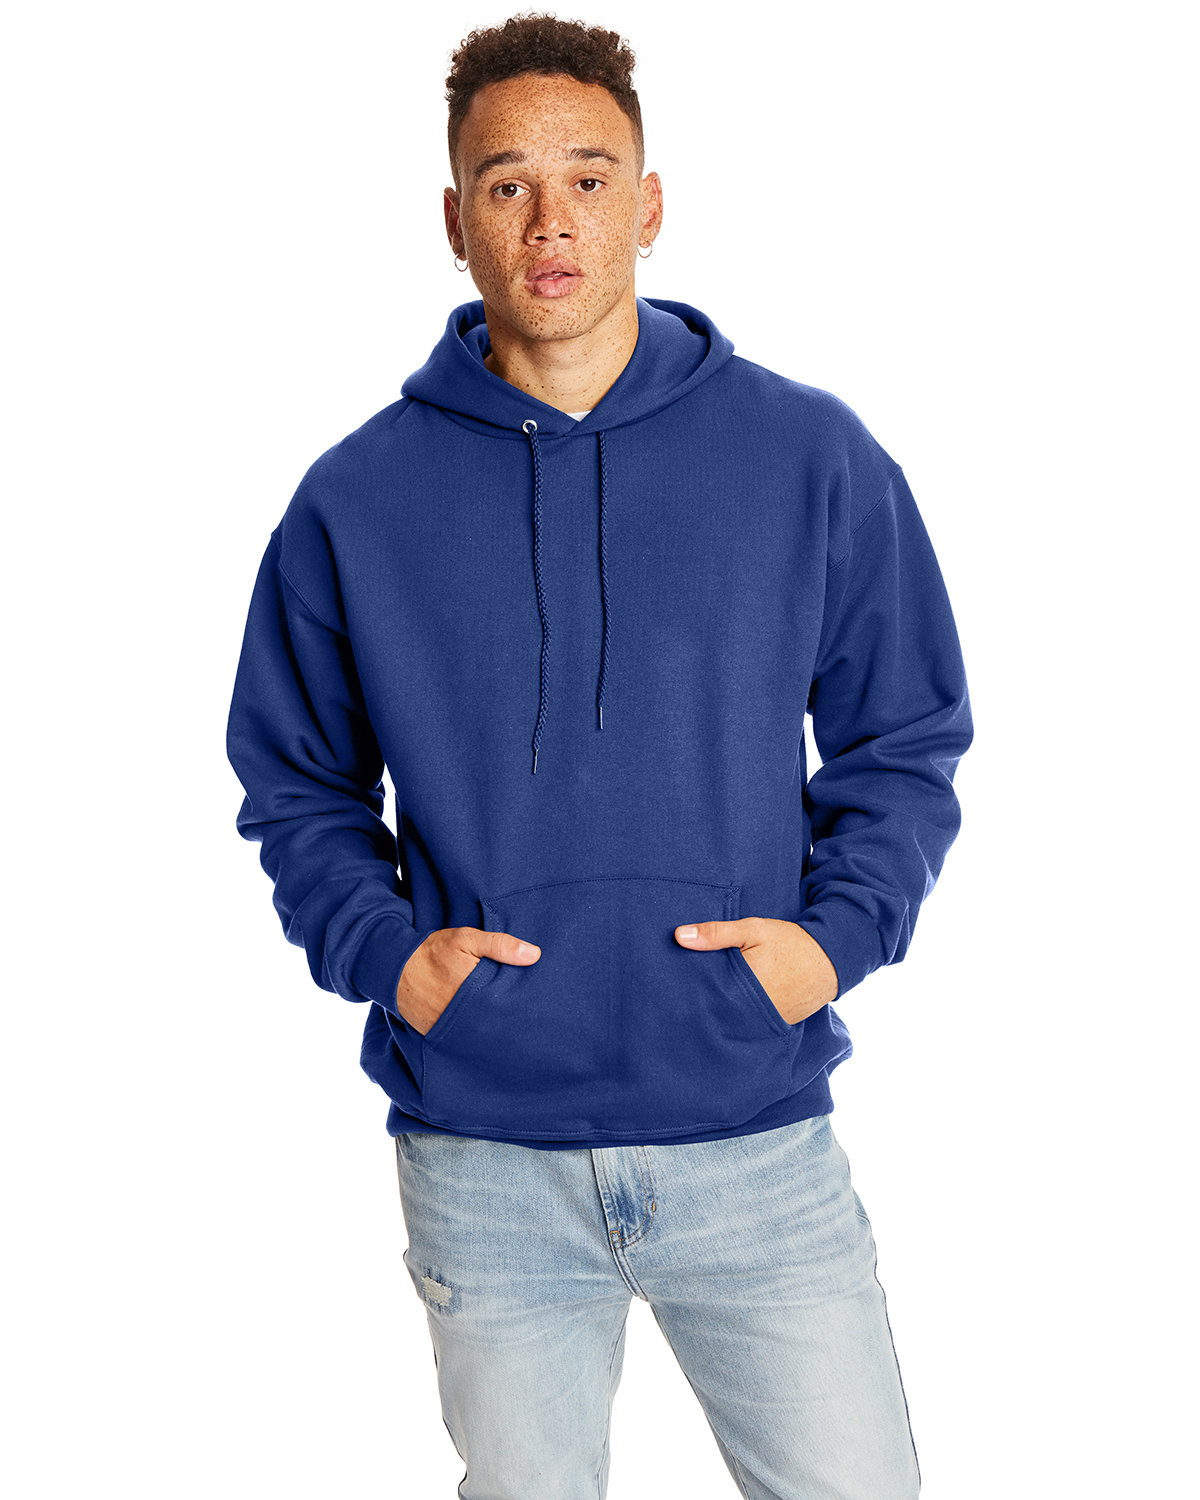 Hanes Adult Ultimate Cotton® 90/10 Pullover Hooded Sweatshirt DEEP ROYAL